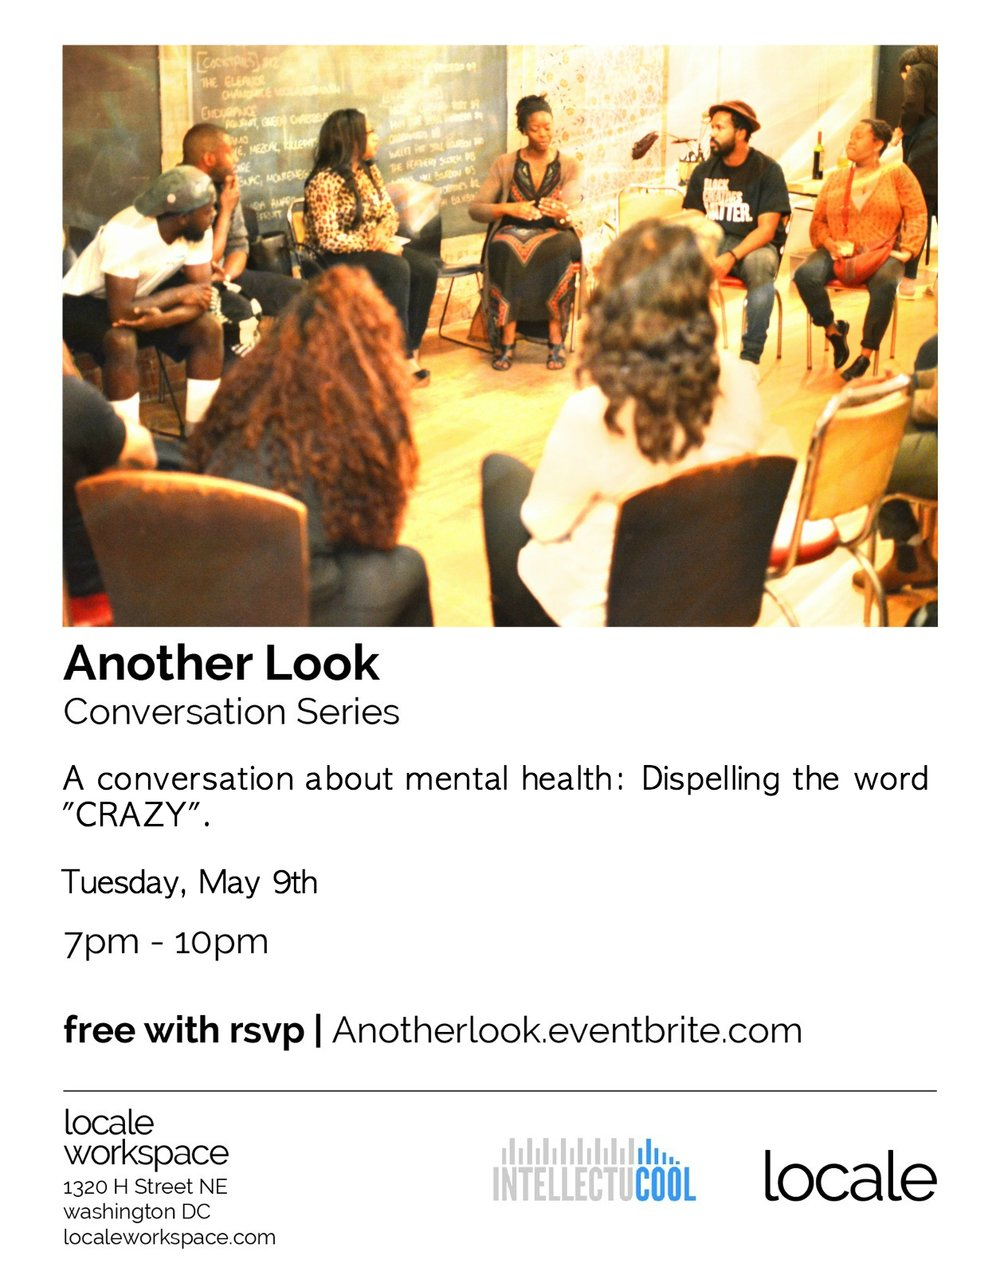 Another Look Mental Health